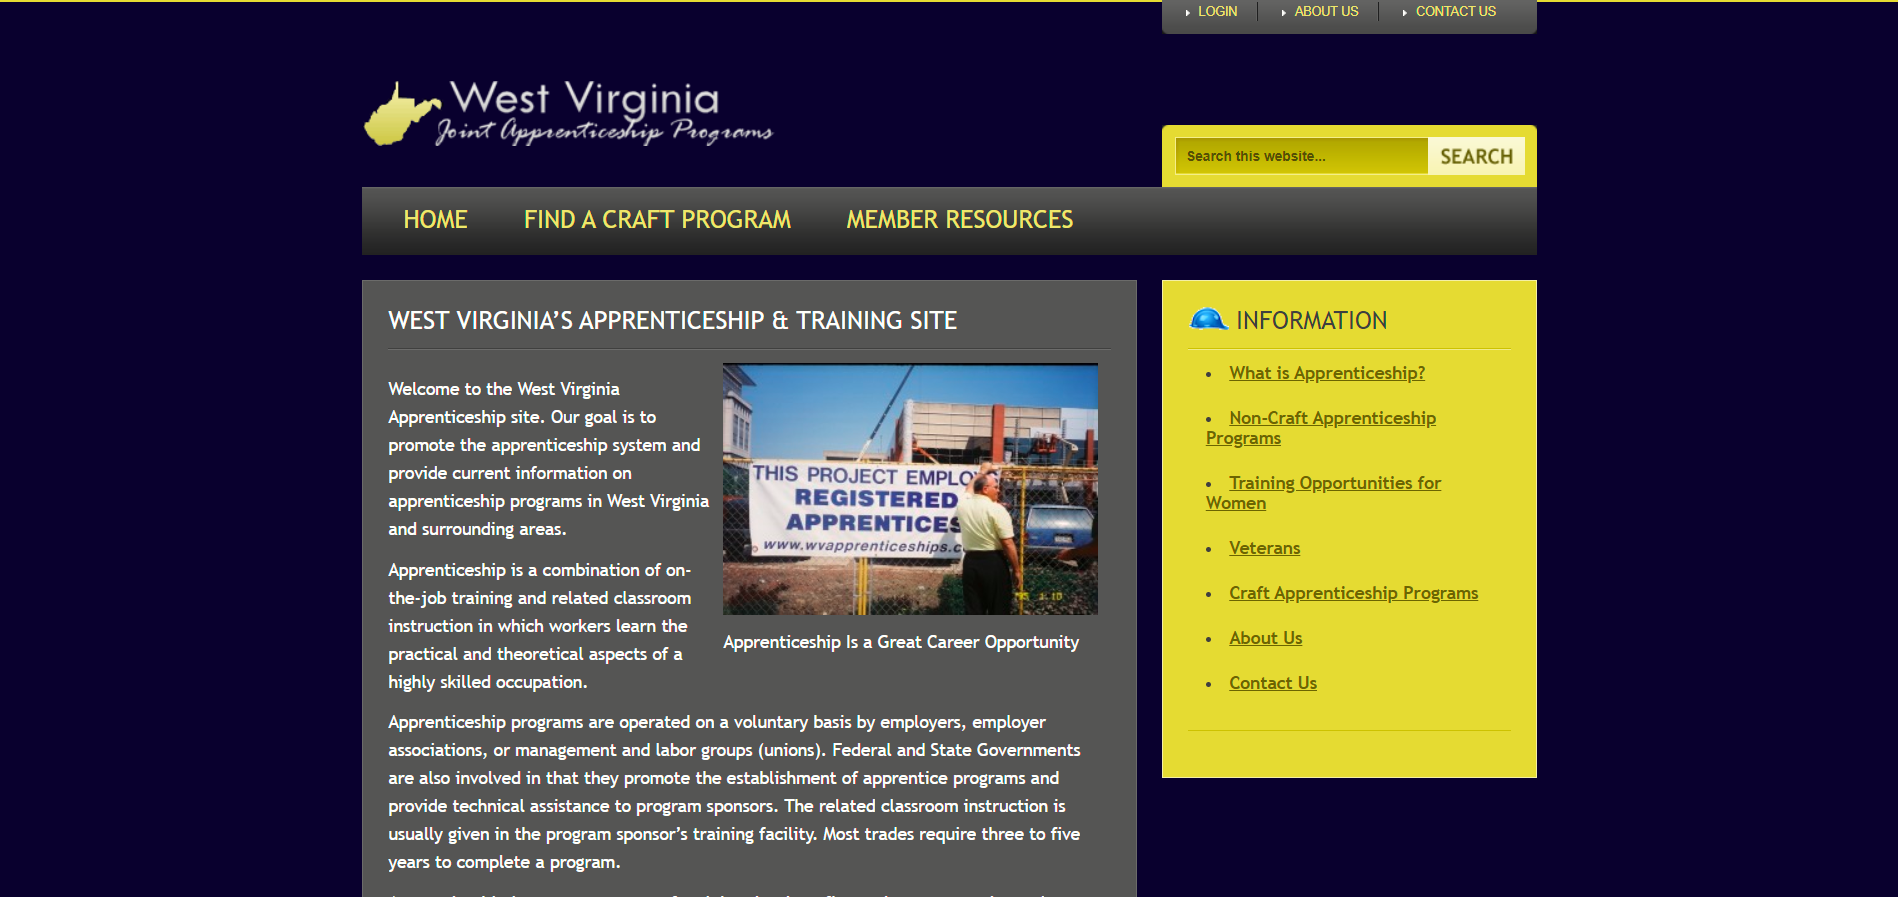 parkersburg joint app. training committee